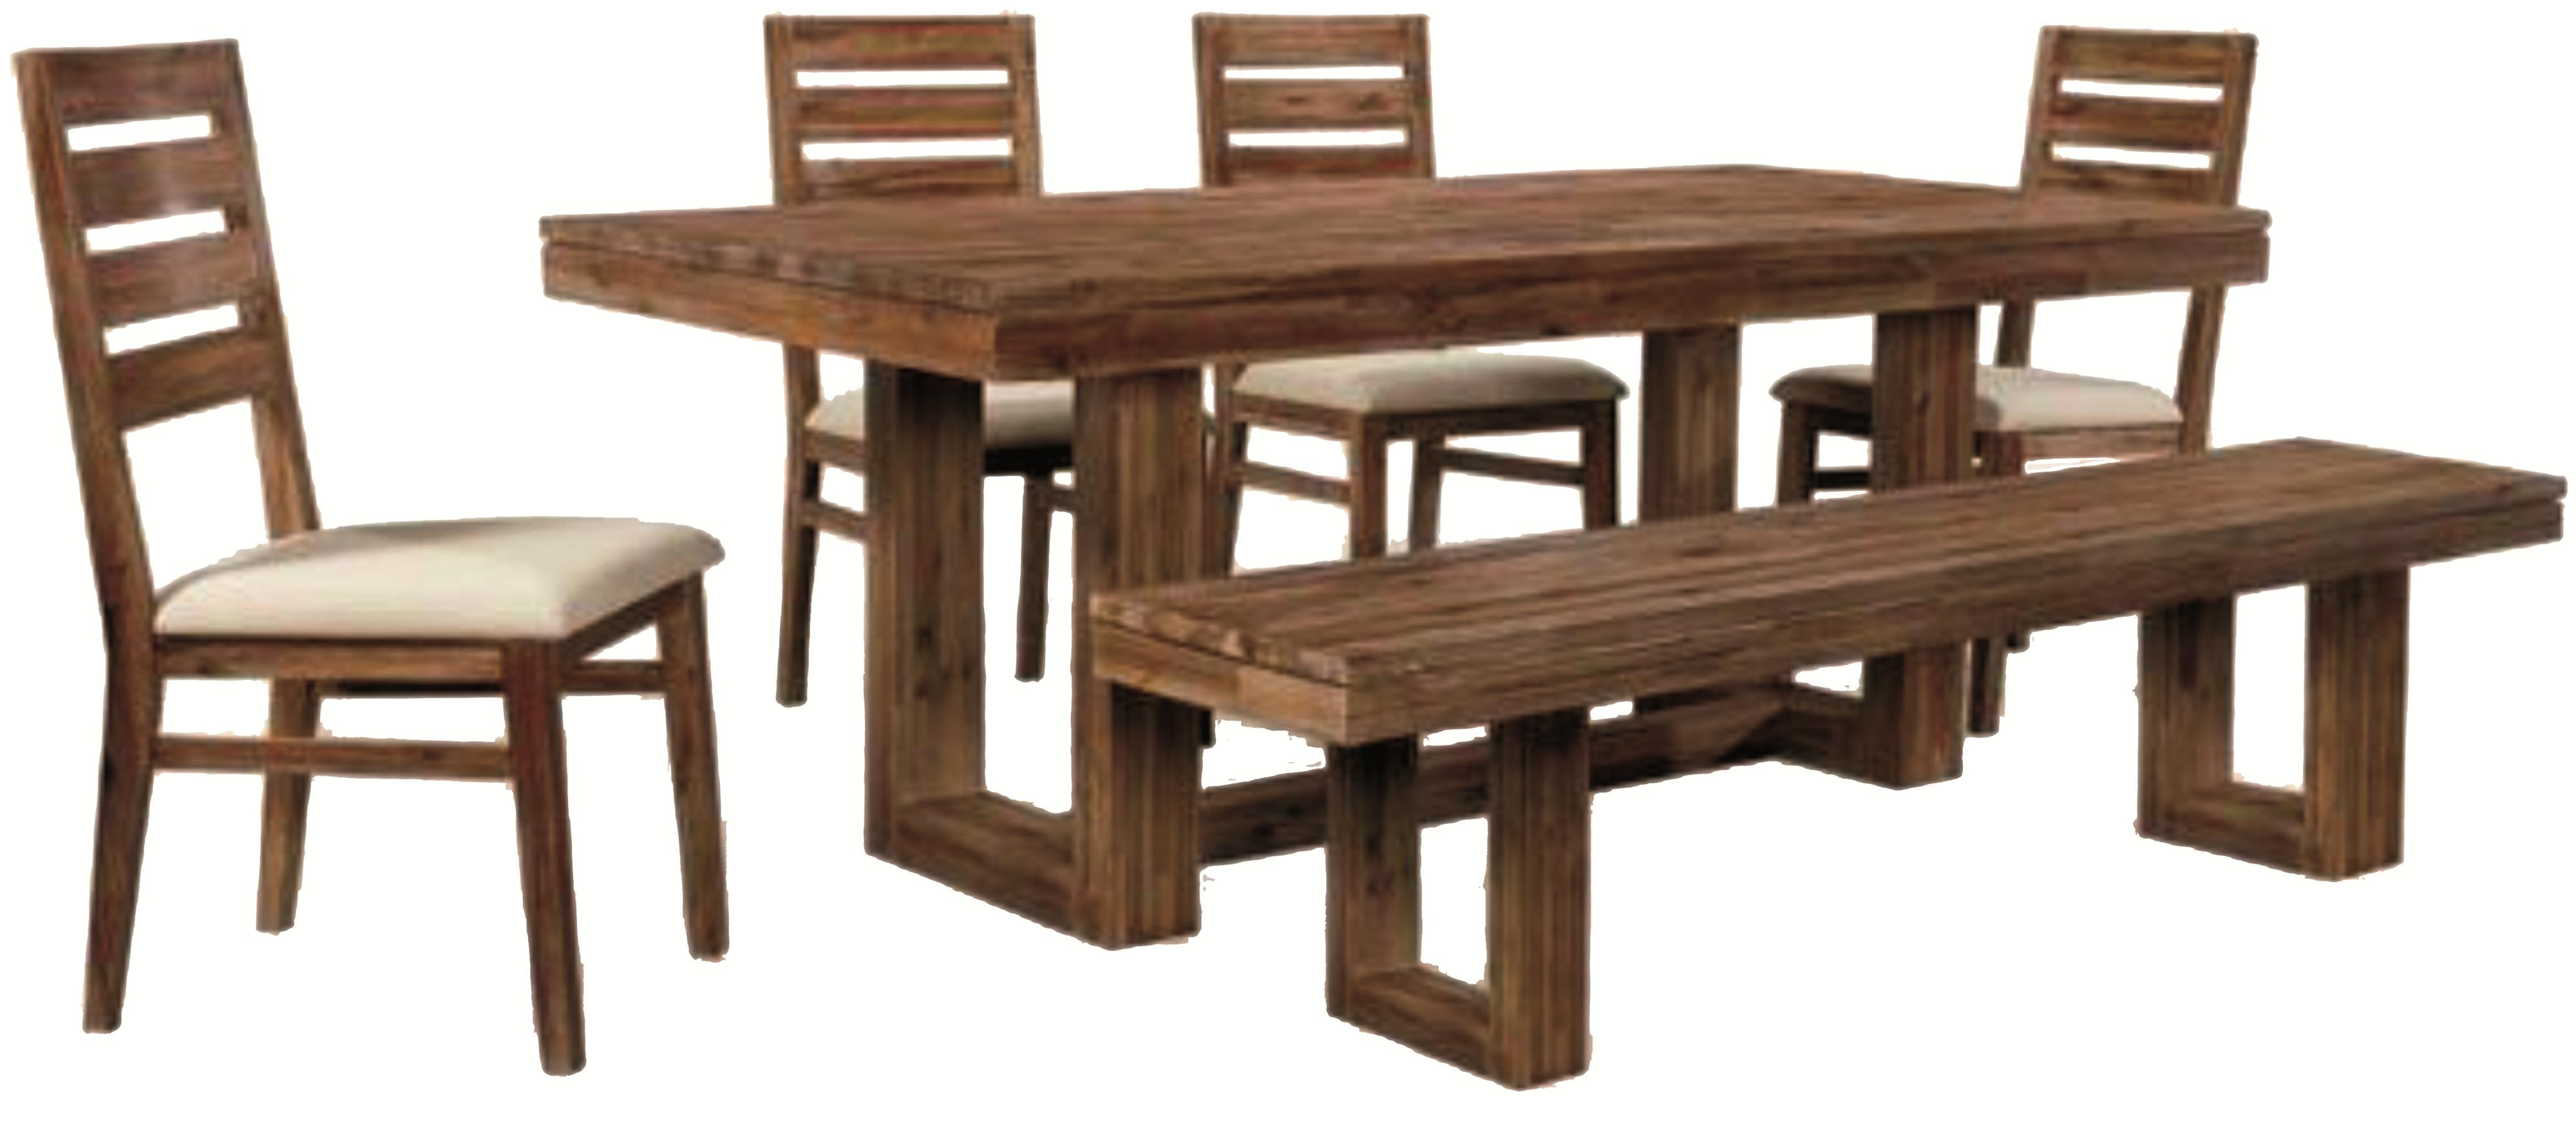 Six Piece Modern Rustic Rectangular Trestle Table With Ladderback Inside Recent Parquet 6 Piece Dining Sets (Image 19 of 20)